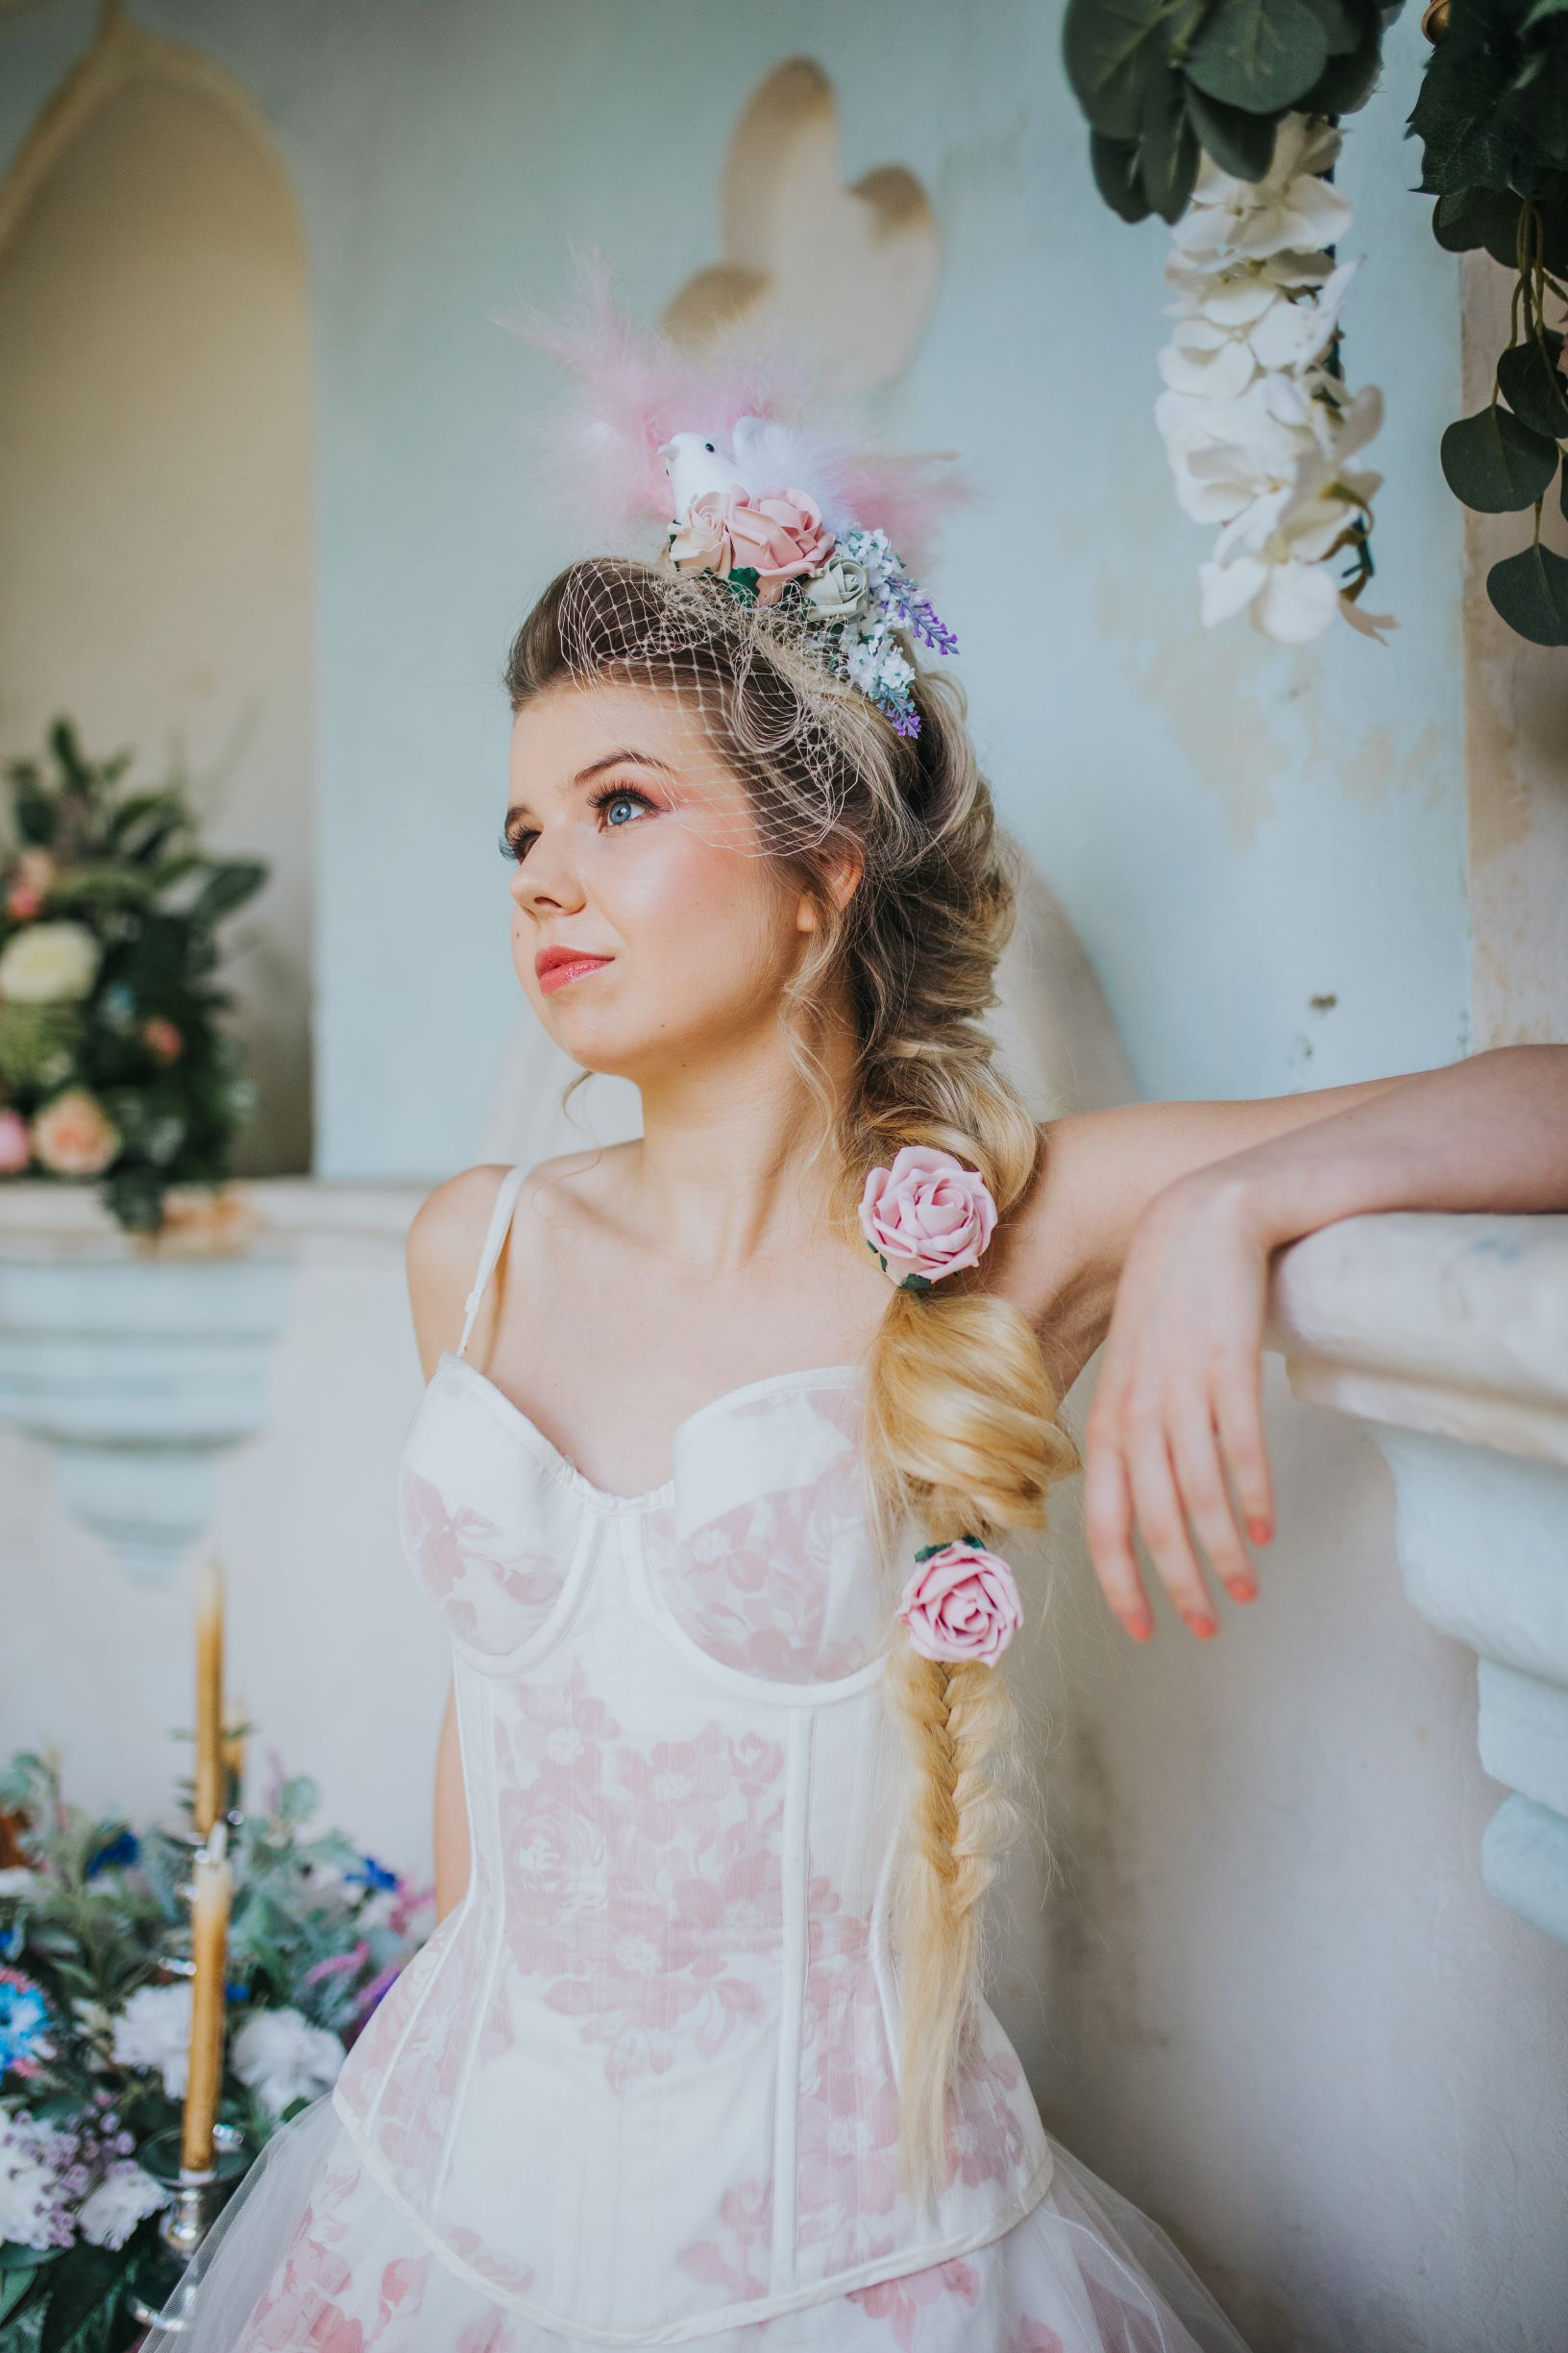 Whimsical wedding- bridal hair accessories- Laura Beresford Photography- unconventional wedding- alternative wedding- pink bride- unique wedding accessories